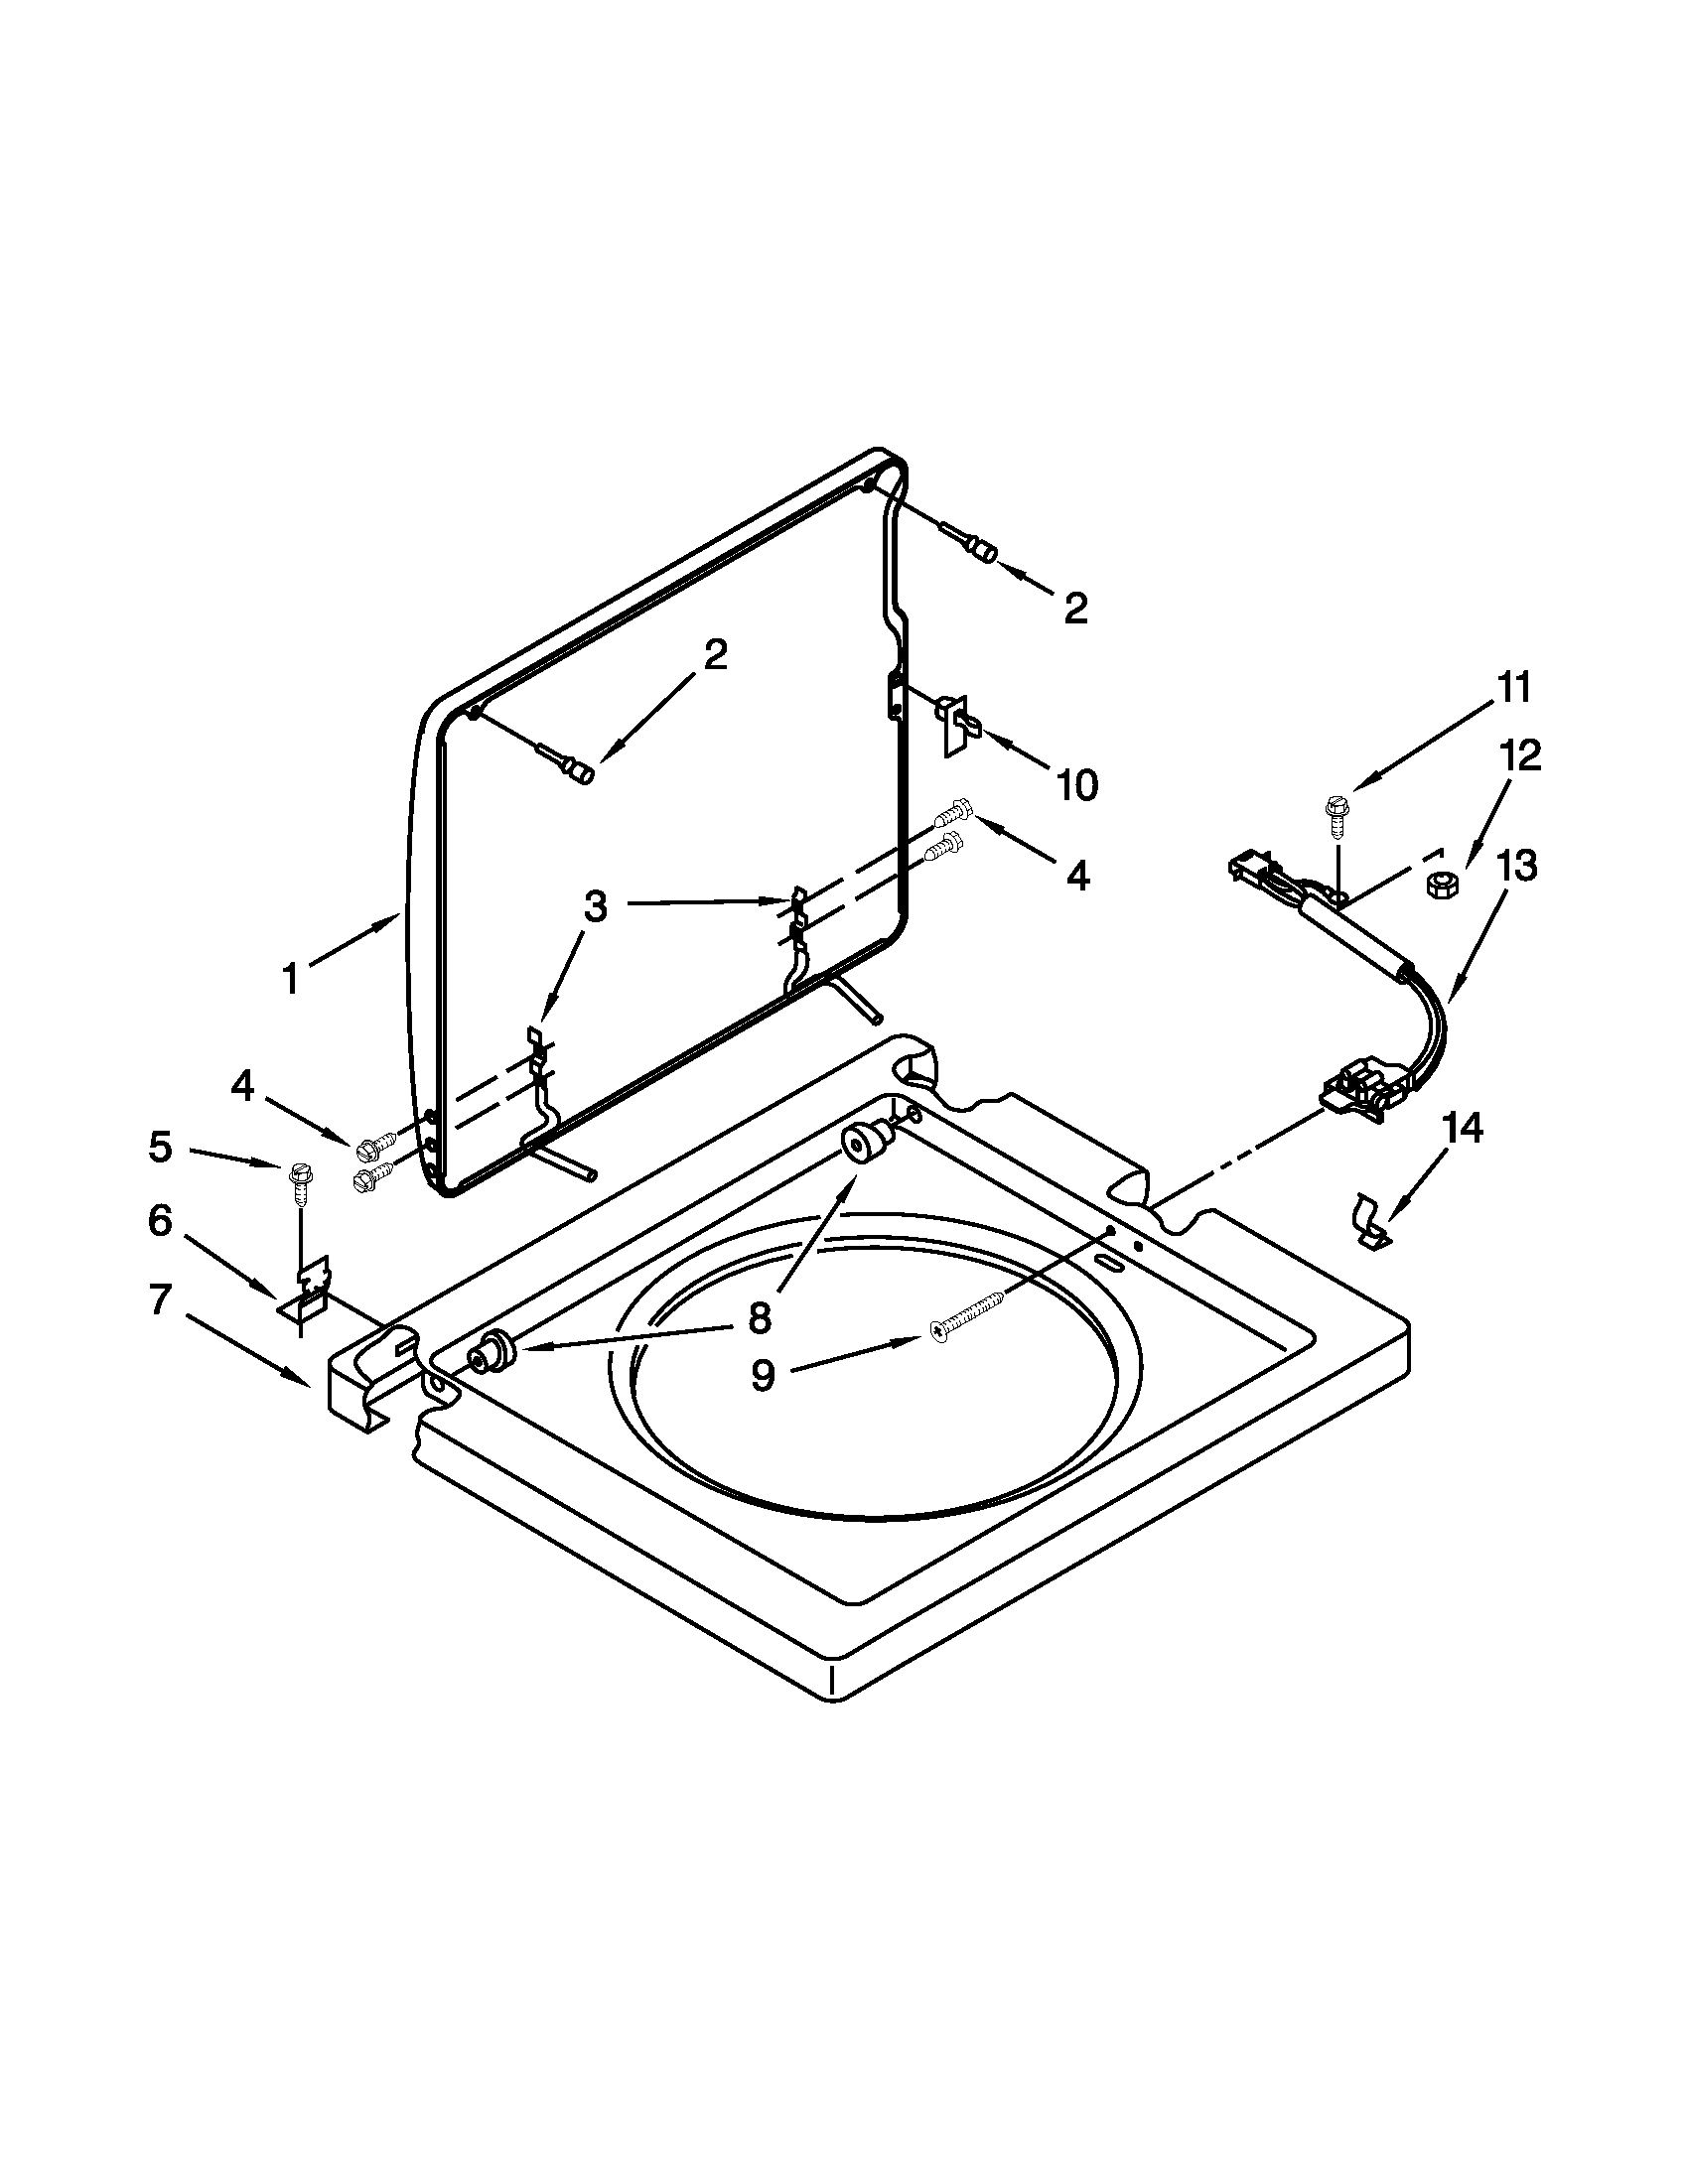 whirlpool thin twin washer parts diagram